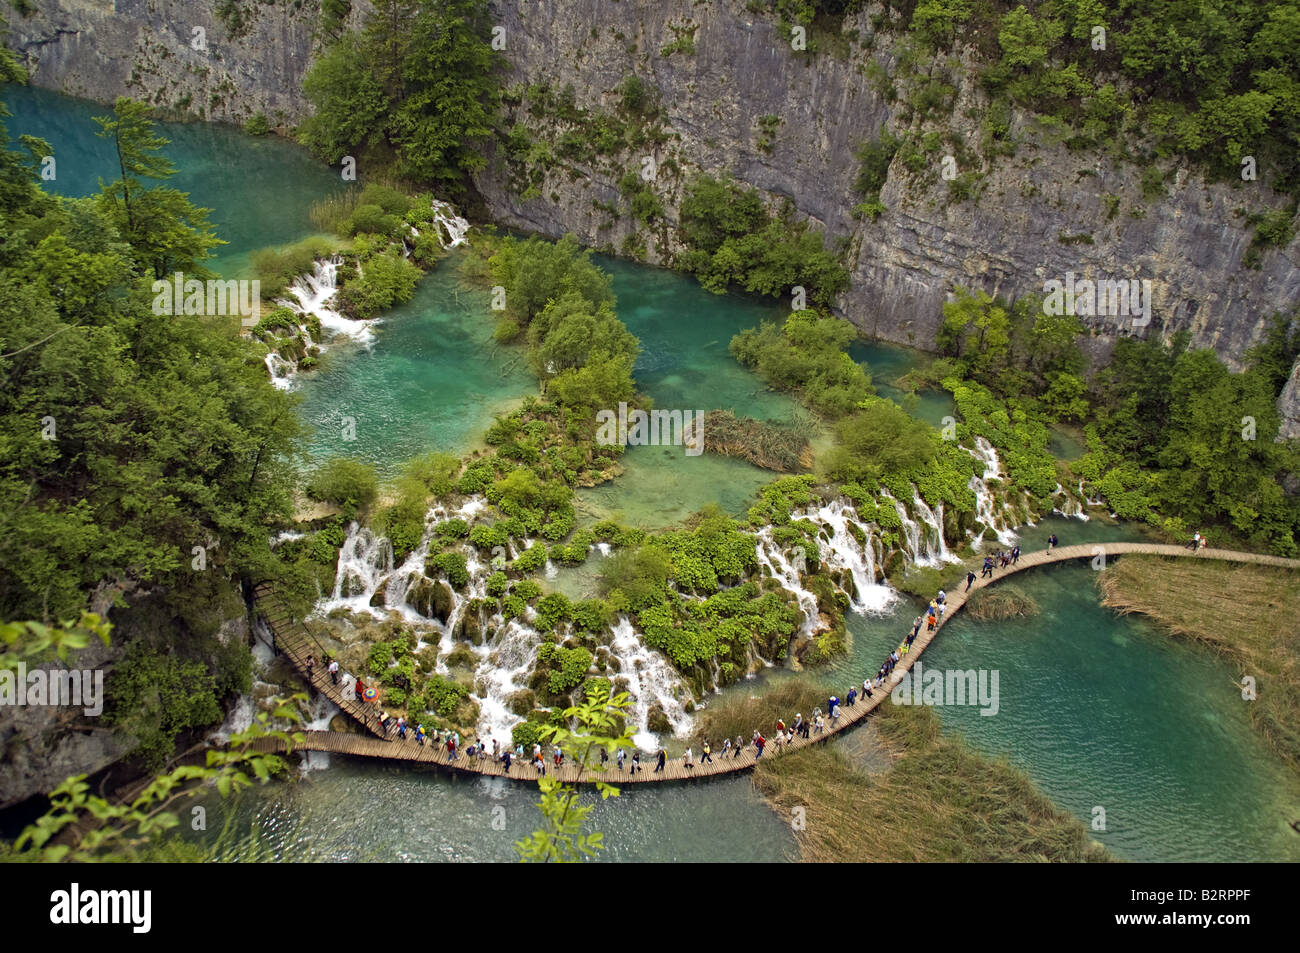 Plitvice Lakes National Park waterfalls in canyon at northern lower end of park with visitors boardwalk - Stock Image